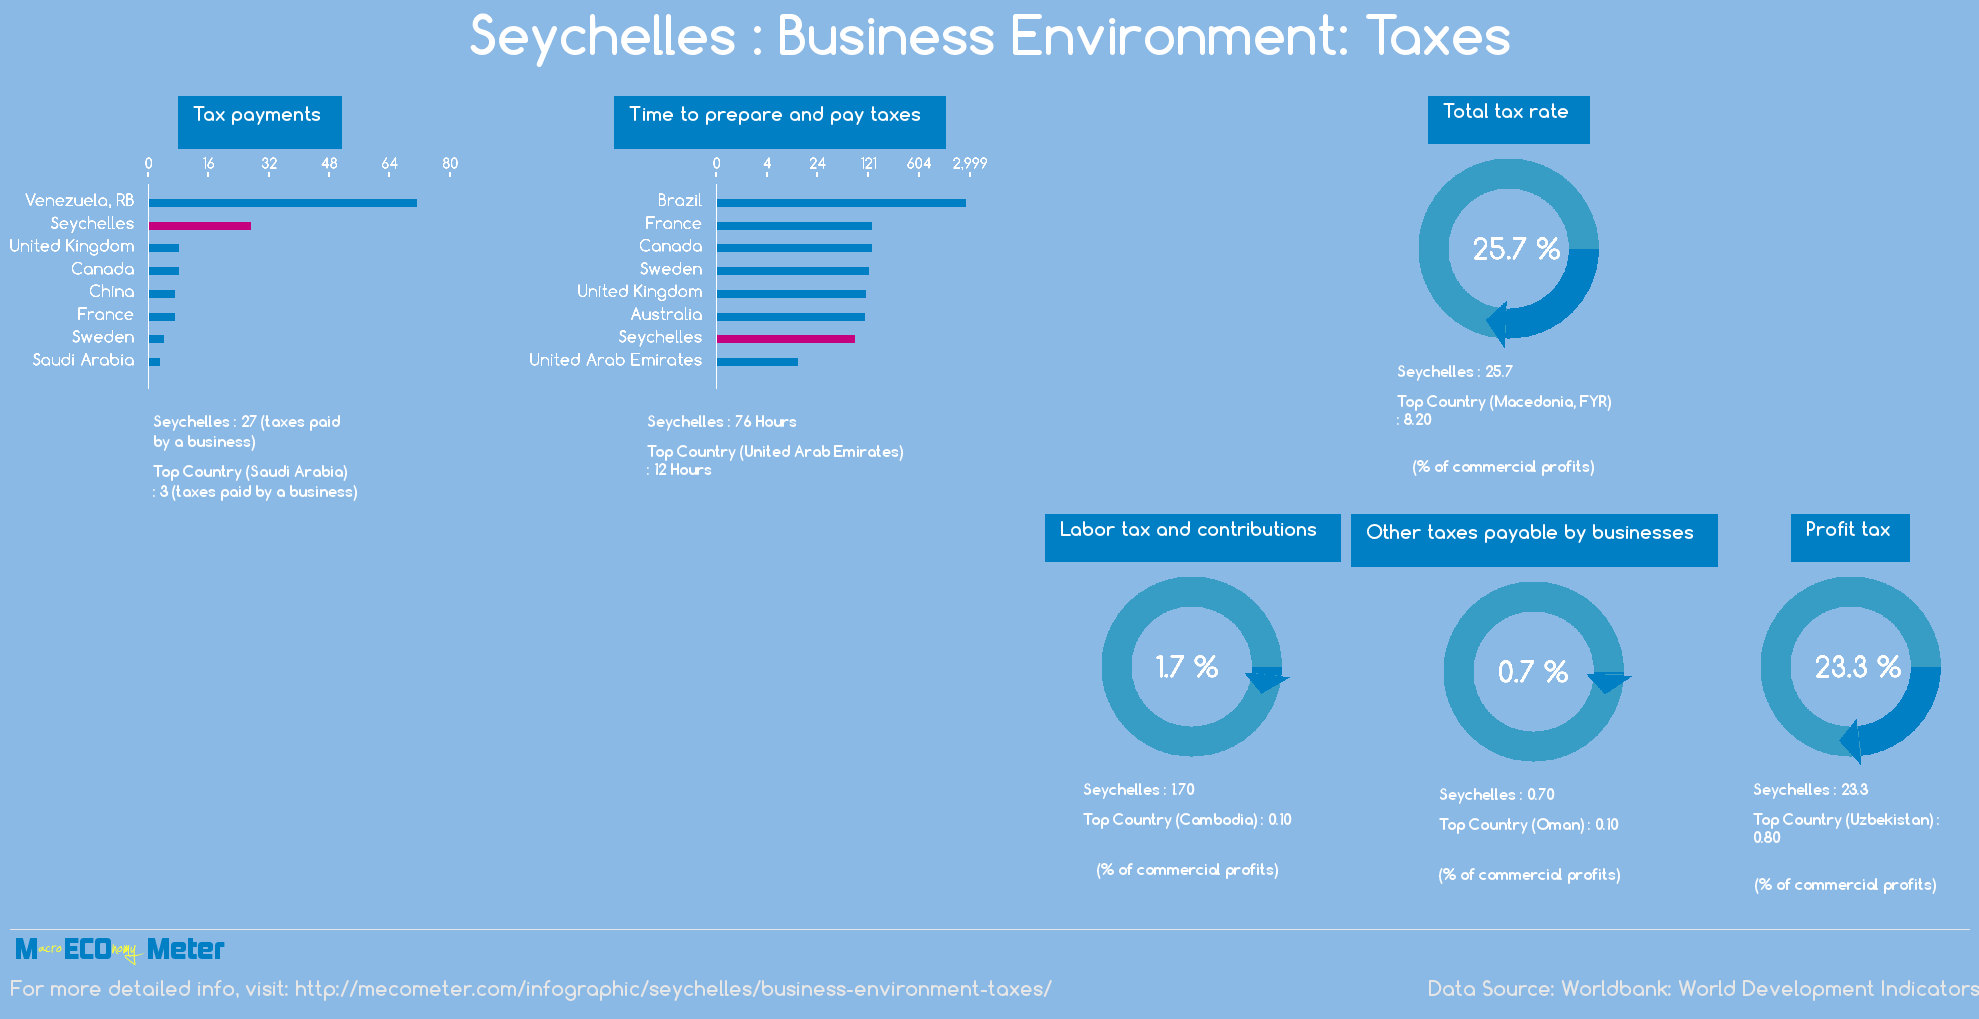 Seychelles : Business Environment: Taxes